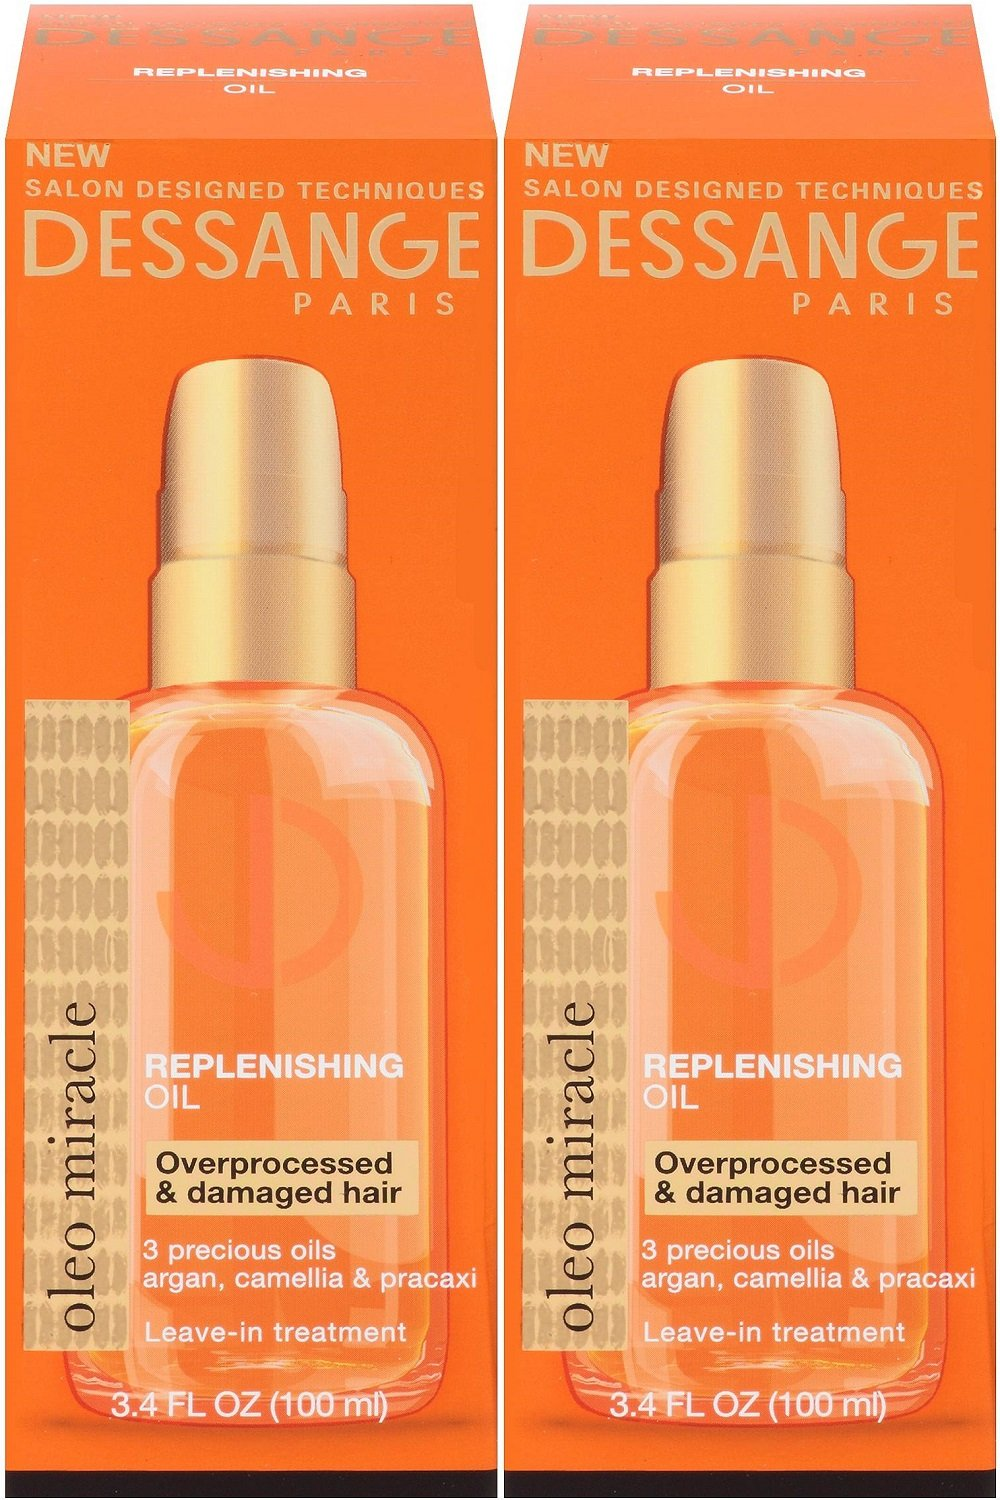 Dessange Paris Oleo Miracle Replenishing Oil, 3.4 Ounce (Pack of 2)